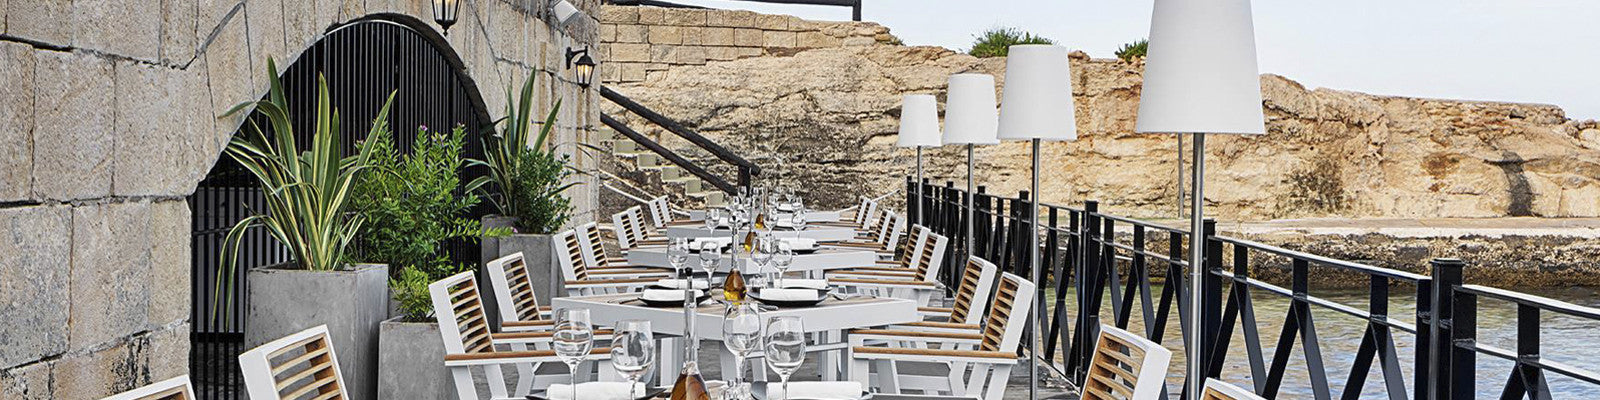 Outdoor Dining Furniture | OROA - Affordable Luxury Furniture Online